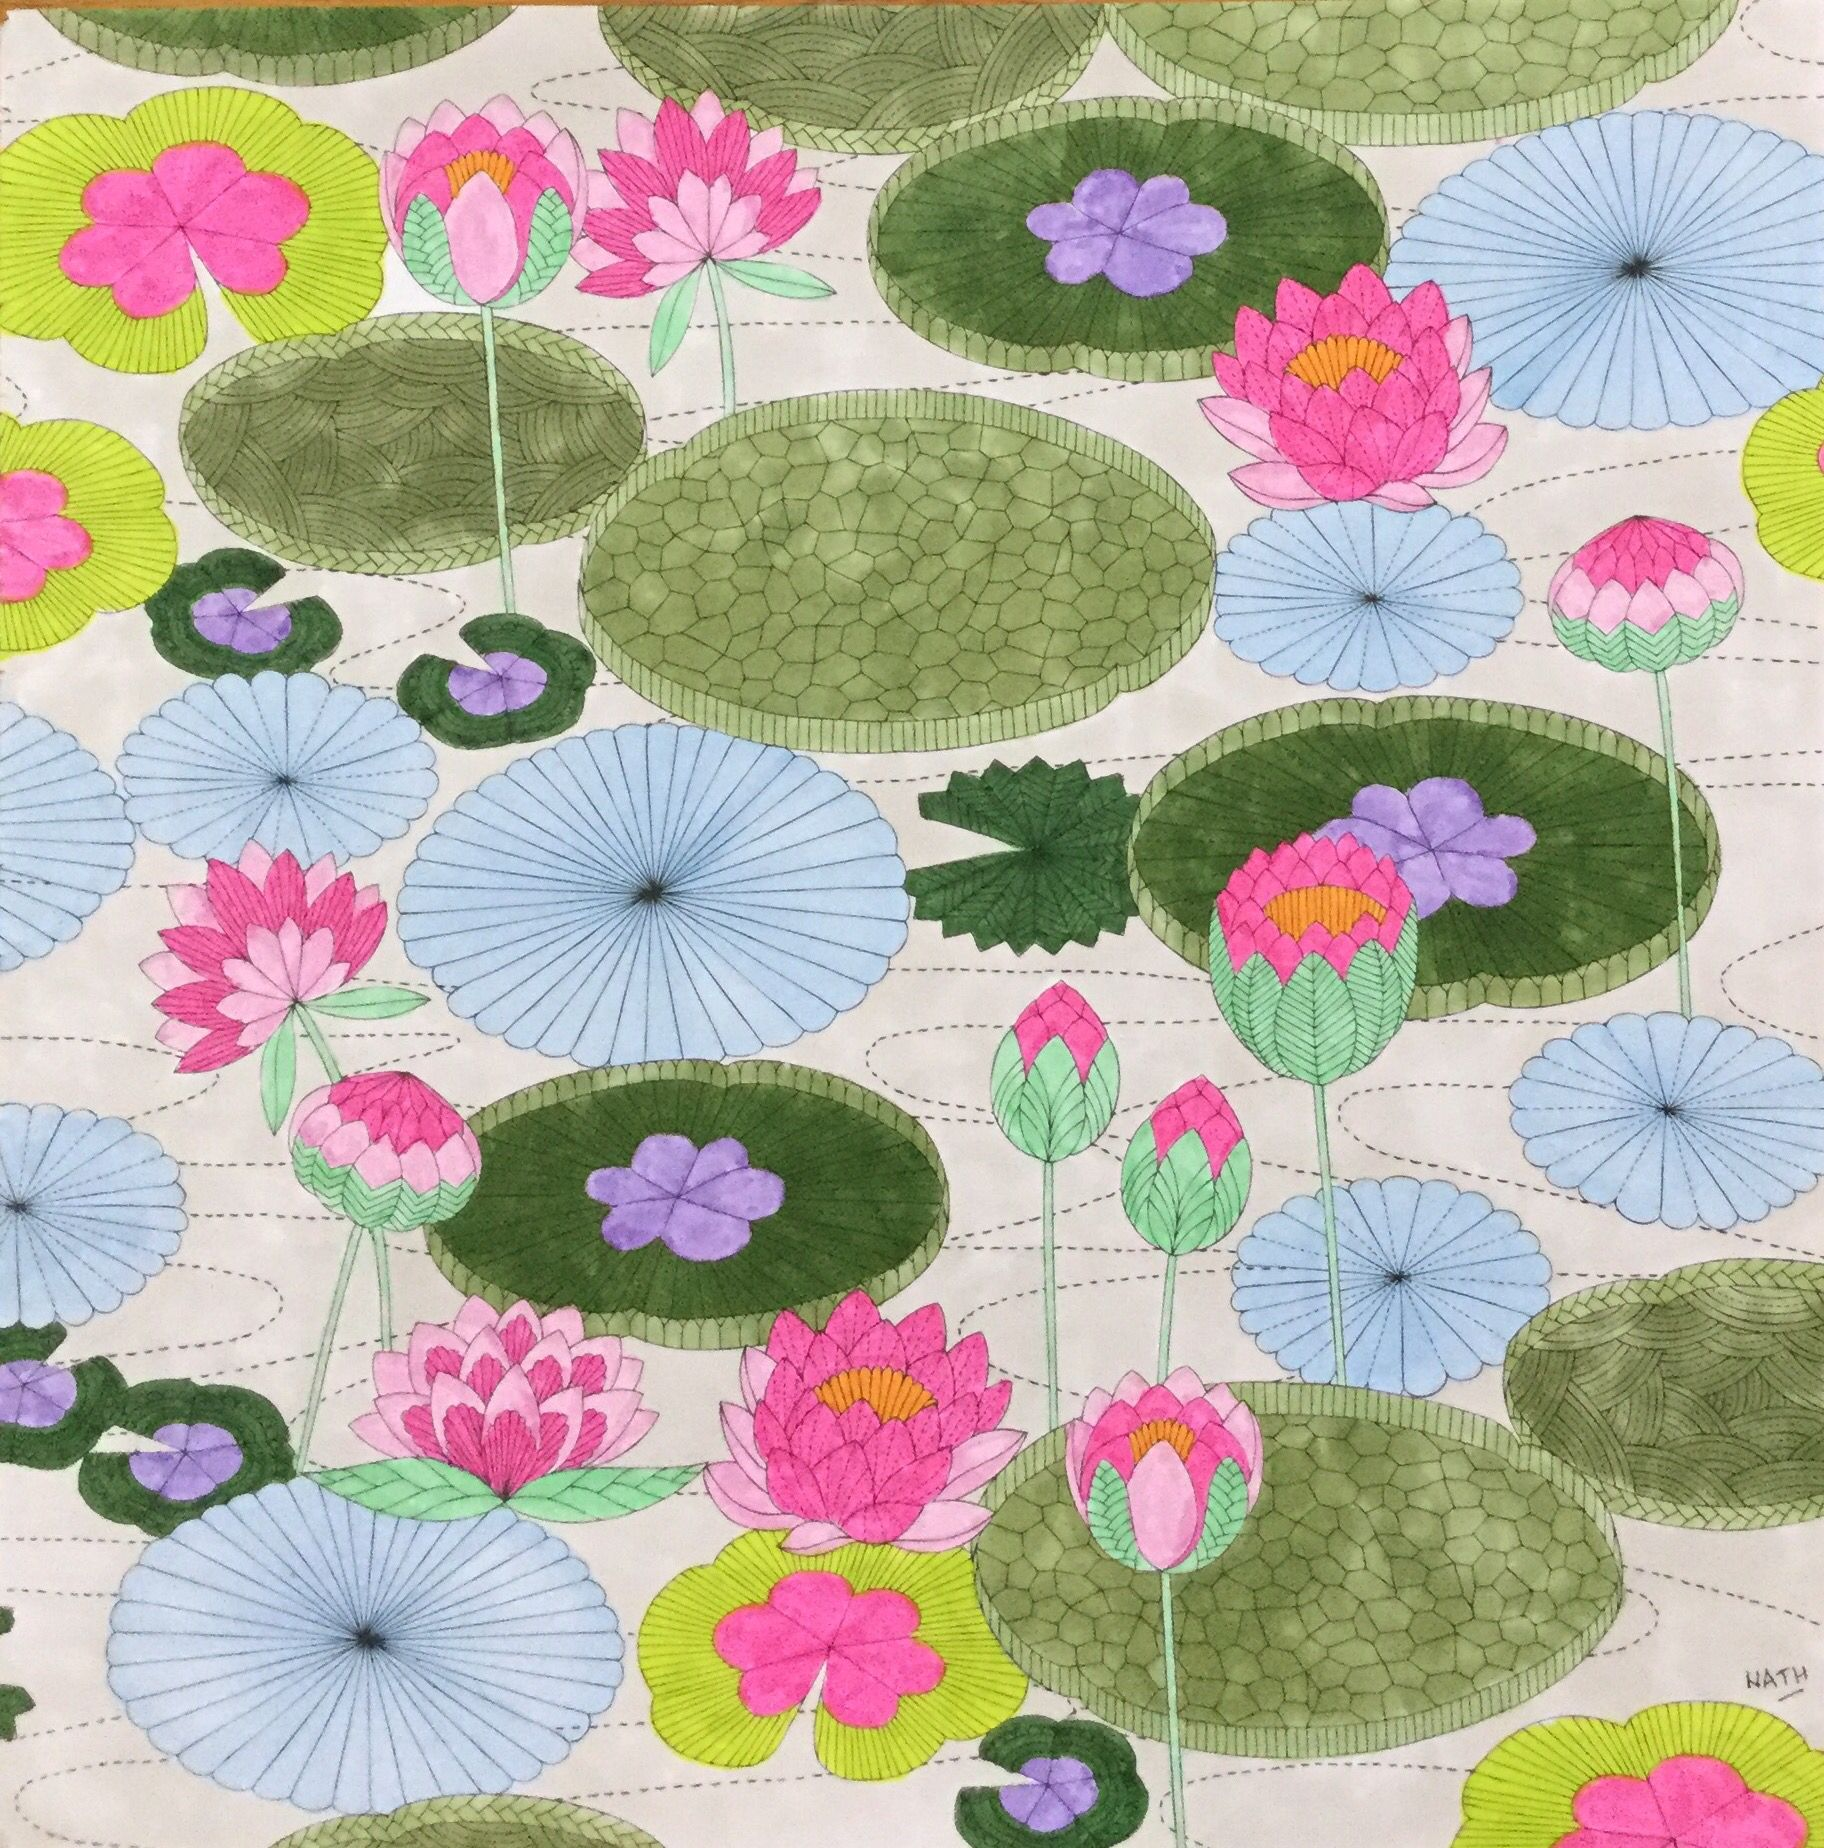 Water lily flower coloring pages - My Colouring Millie Marotta Water Lily N Nuphar